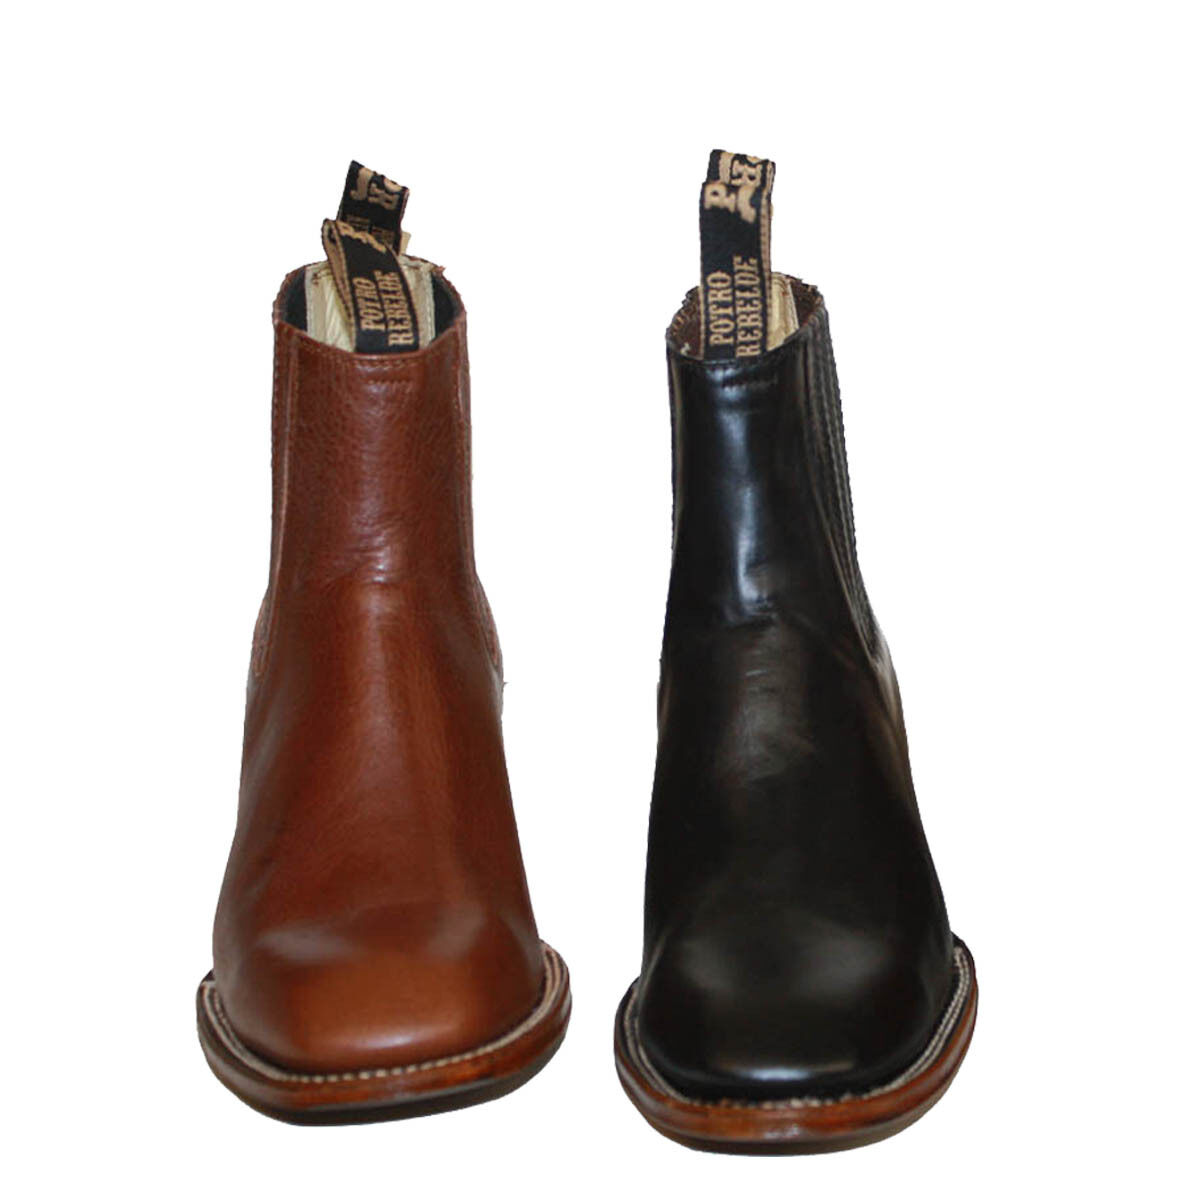 MEN'S GENUINE LEATHER WESTERN STYLE COWBOY SLIP ON BOOTS~ BRAND NEW RB Ankle